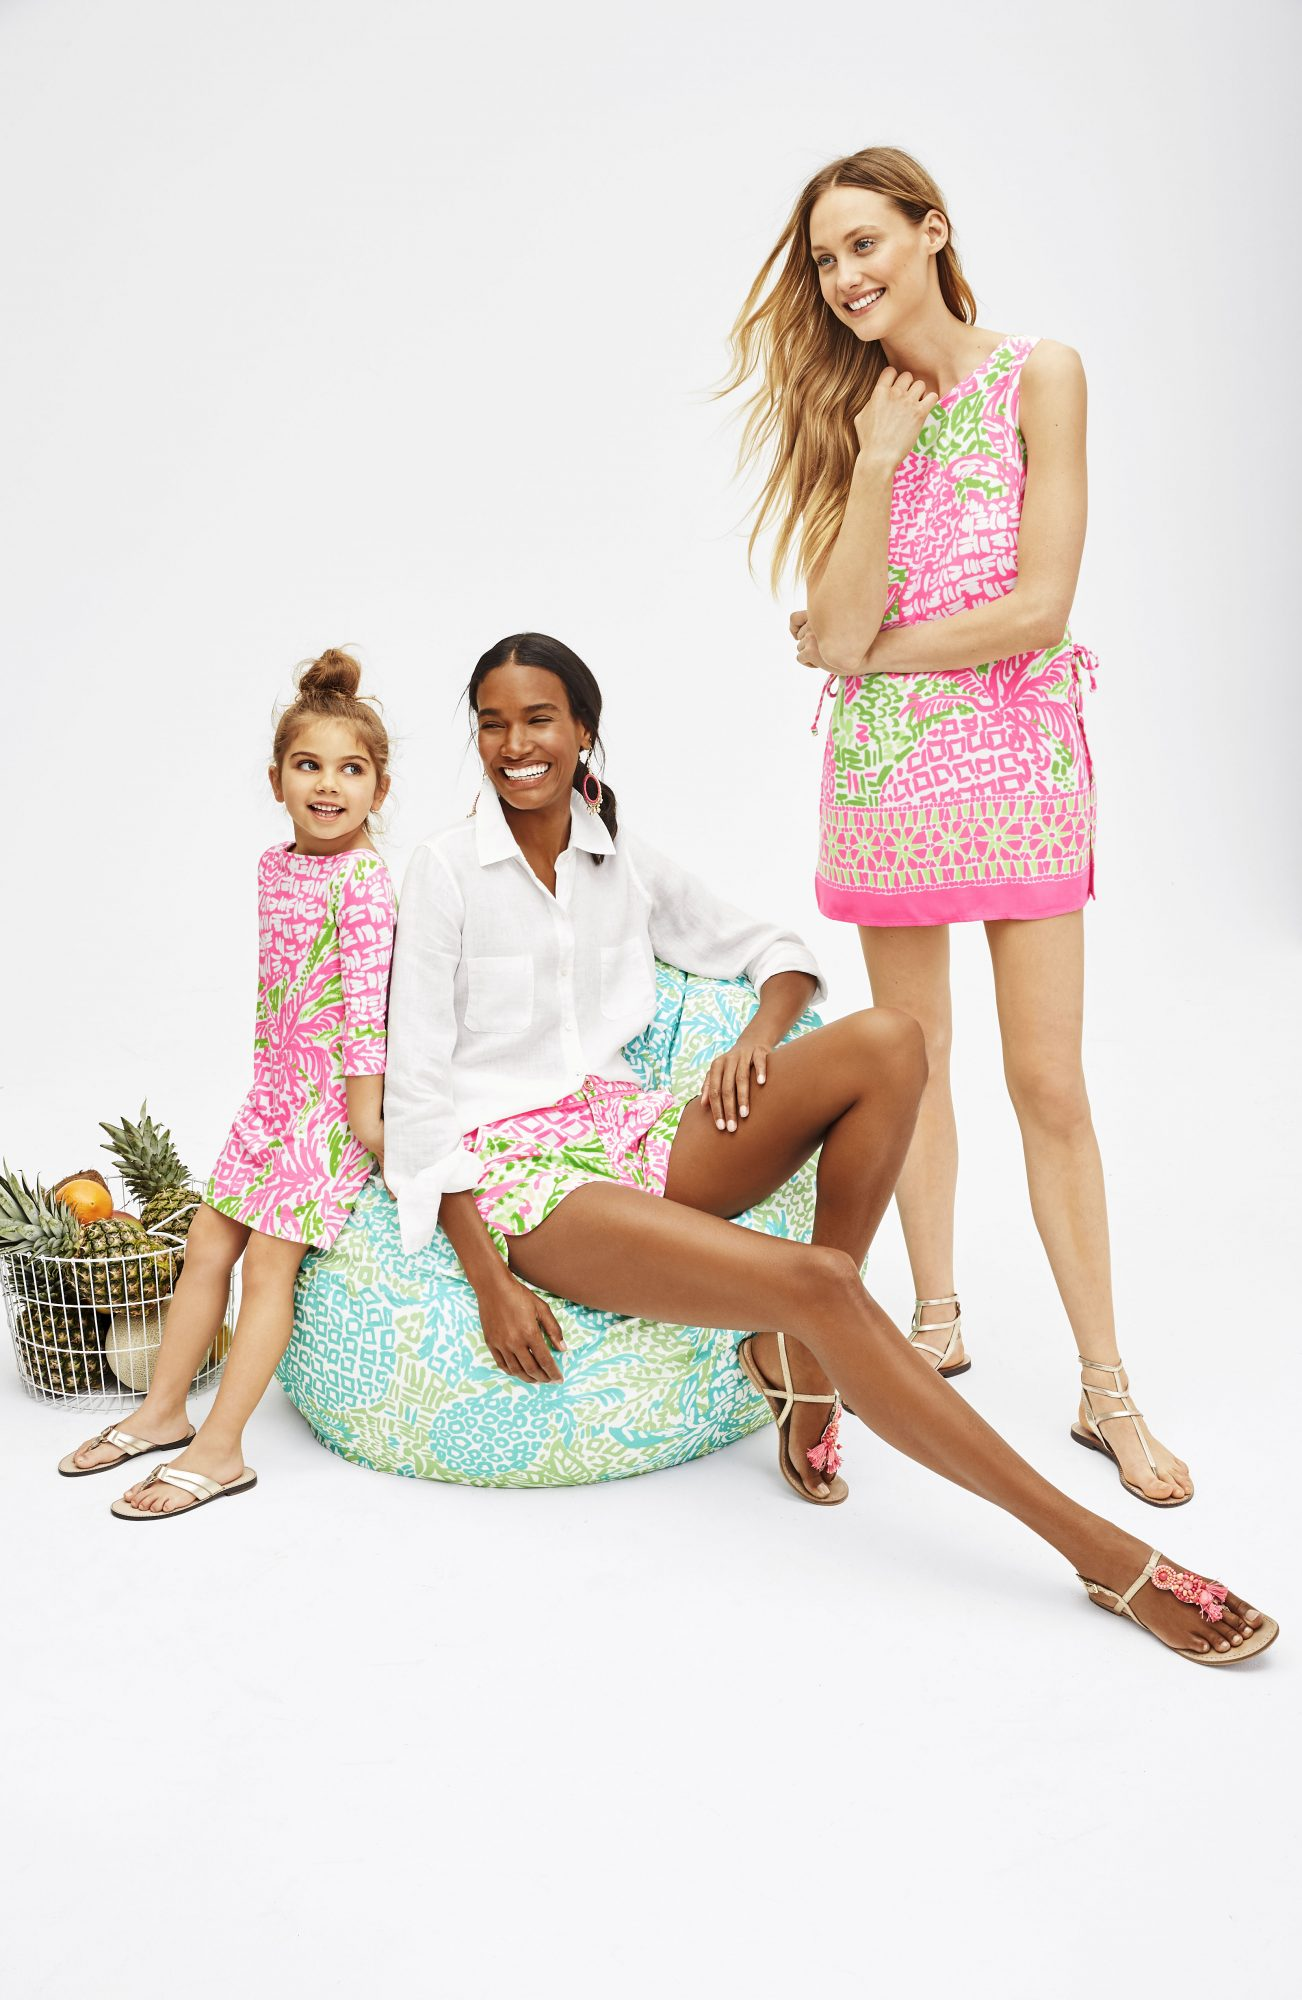 A Lilly Pulitzer Home Collection is Coming to Pottery Barn: Everything We Know So Far